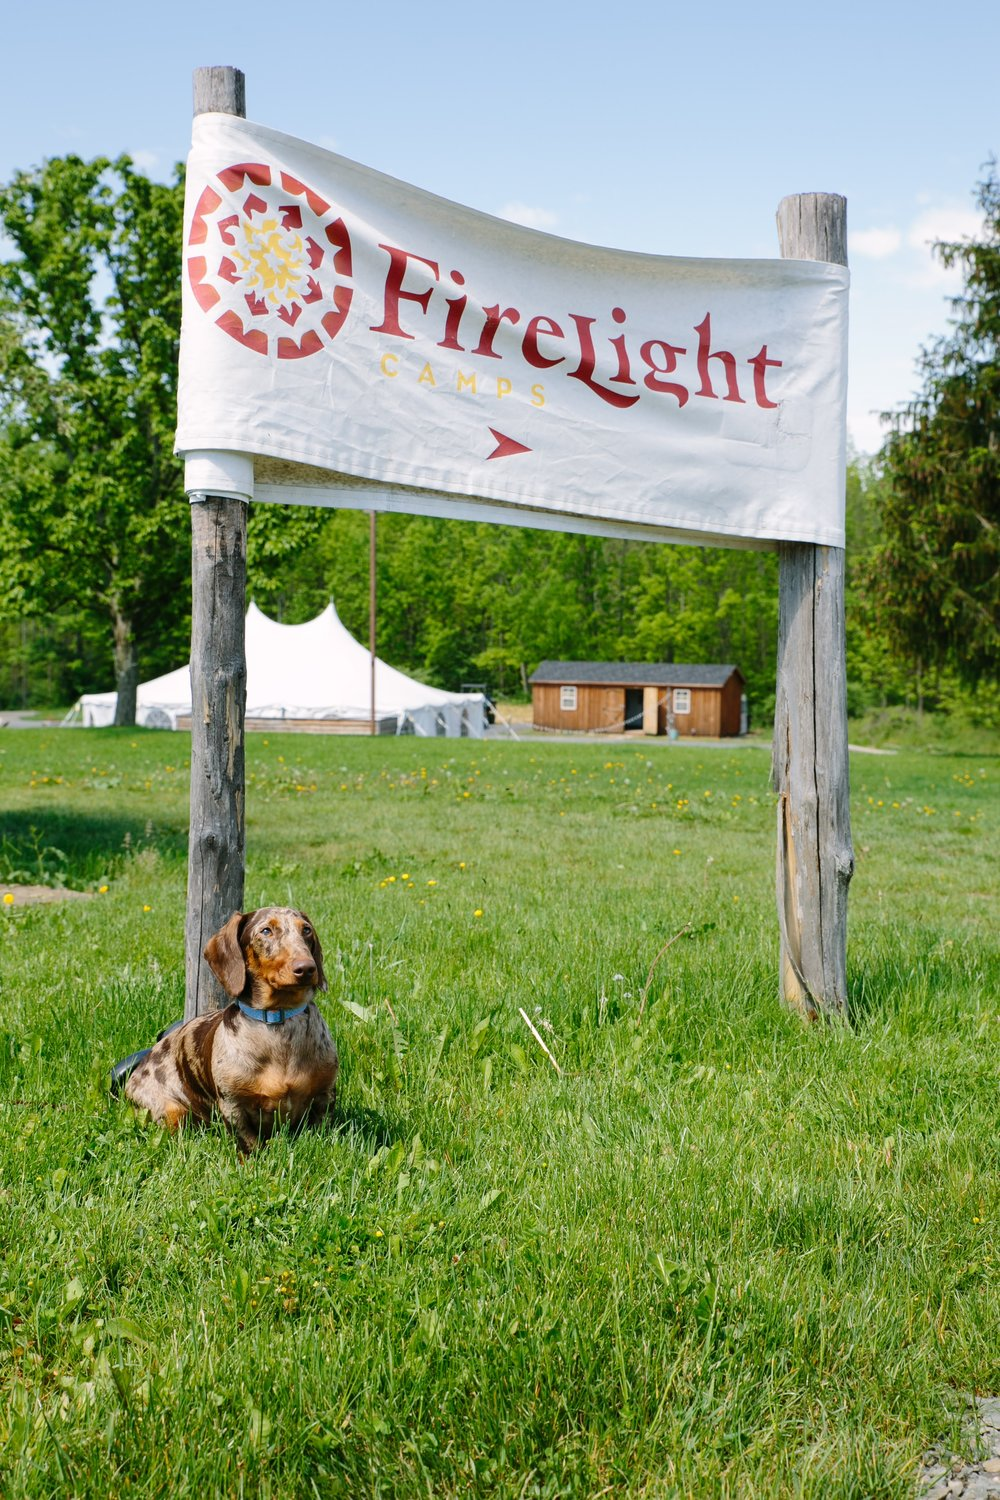 Dave at Firelight Camps